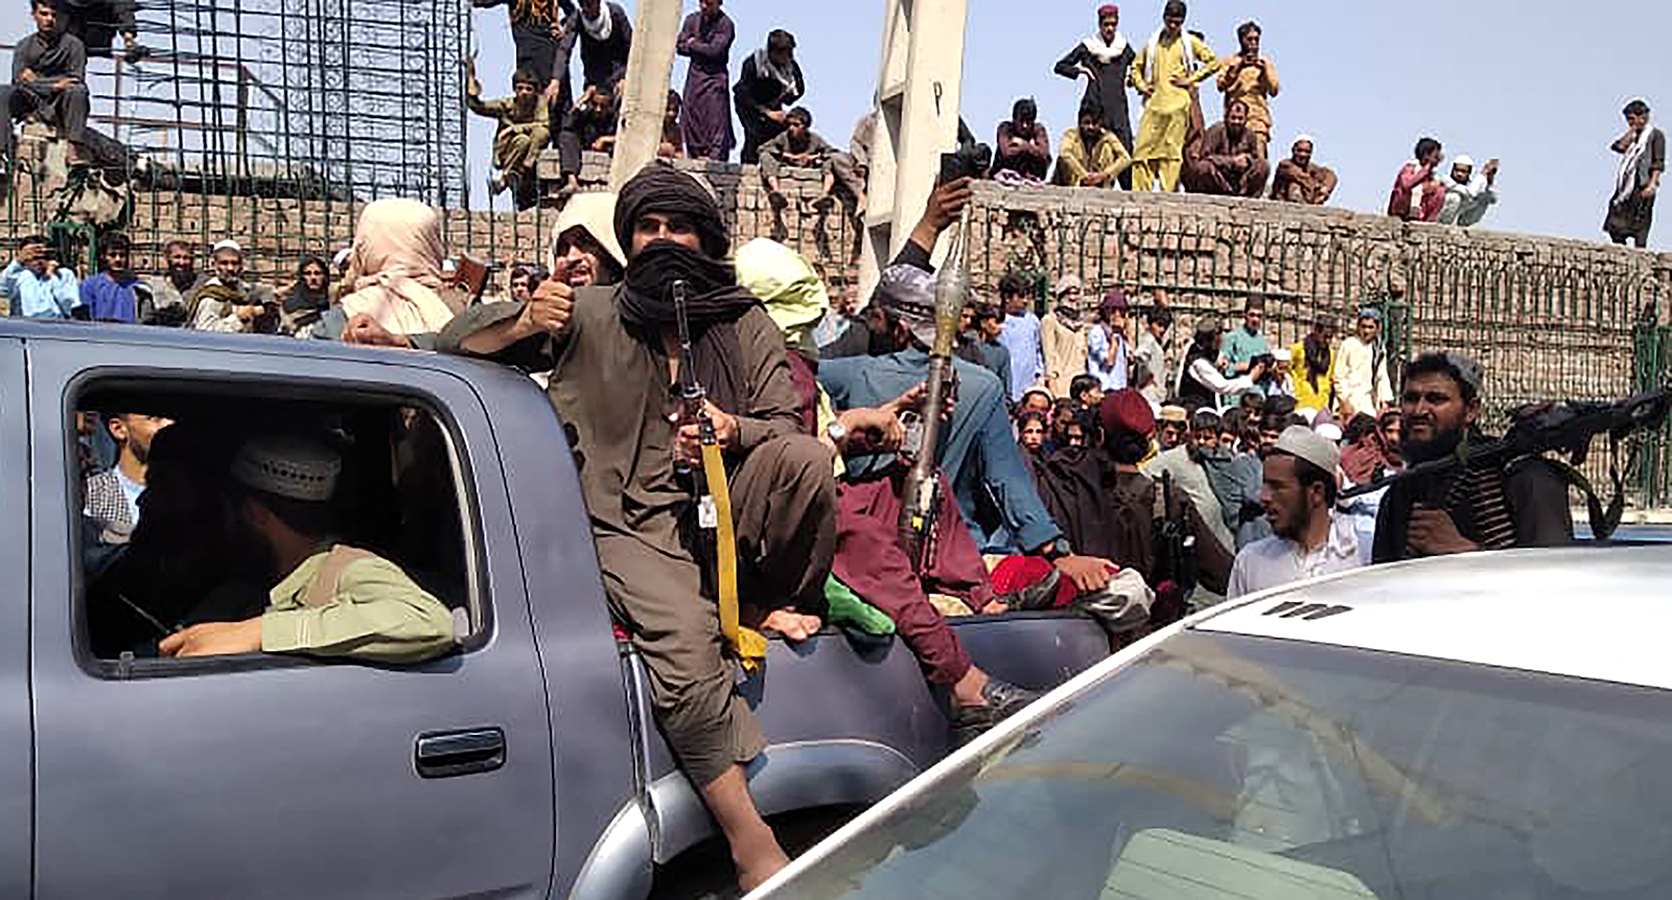 Taliban fighters sit on a vehicle along the street in Jalalabad province, Afghanistan on August 15.